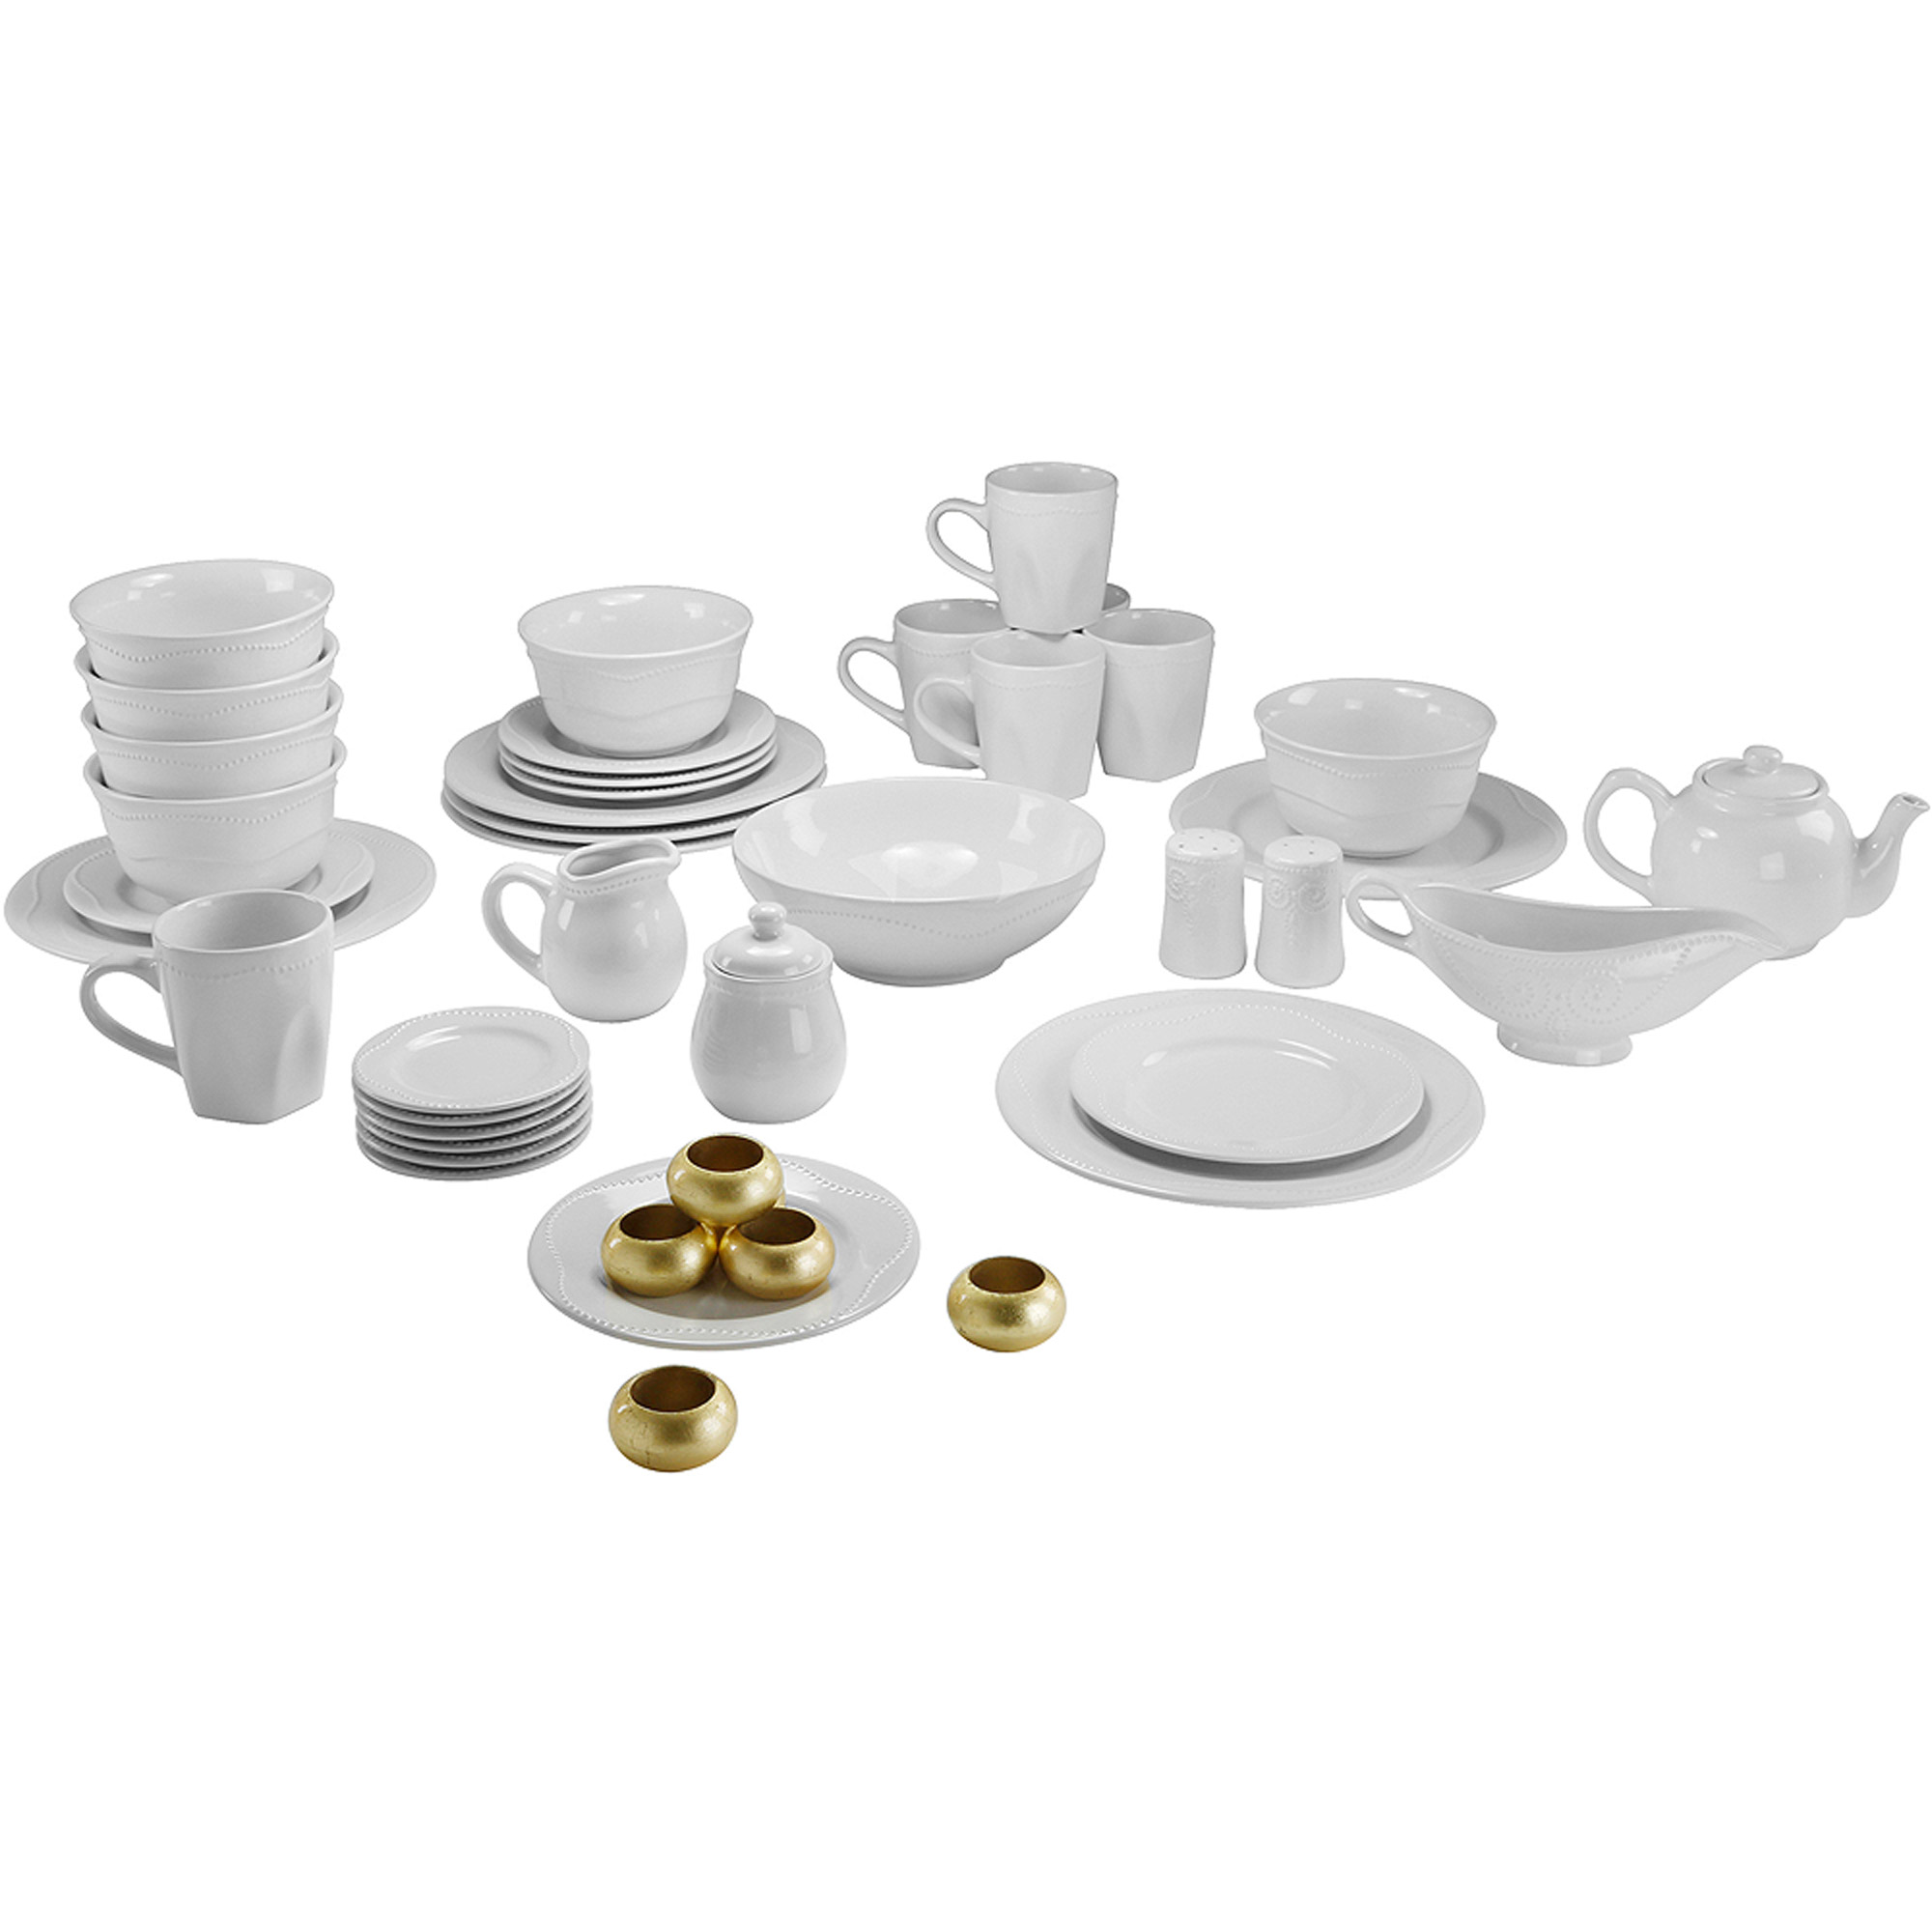 10 Strawberry Street Nova Beaded Round 45-Piece Dinnerware Set  sc 1 st  Walmart & 10 Strawberry Street Nova Beaded Round 45-Piece Dinnerware Set ...